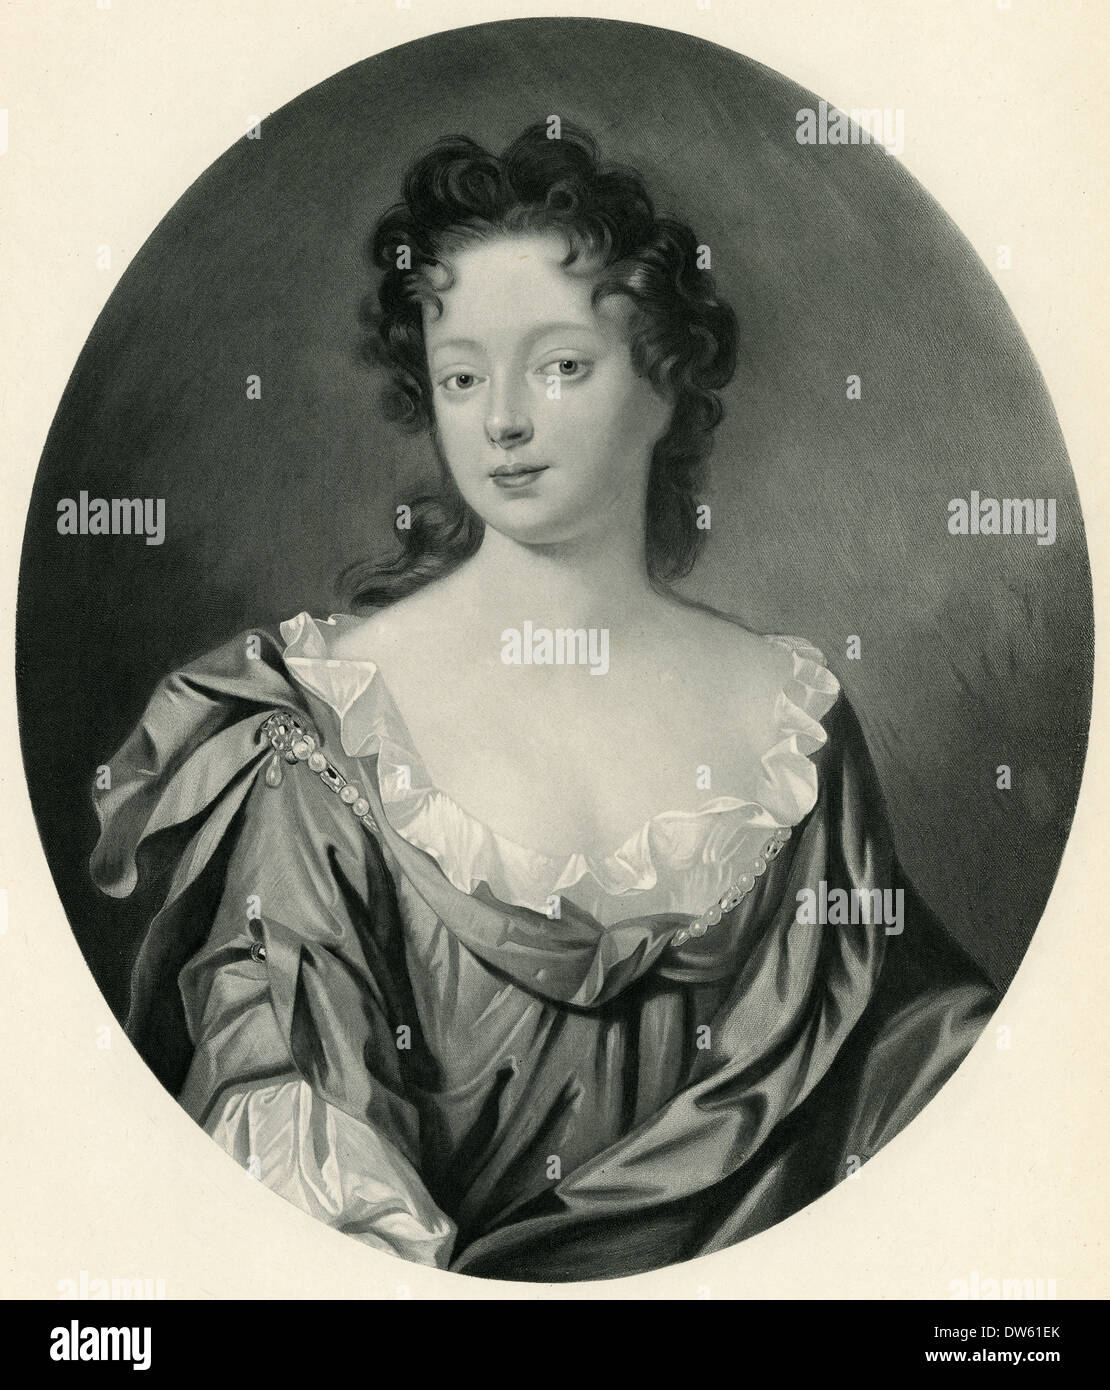 Antique engraving, Eleanor 'Nell' Gwyn, mistress of King Charles II. - Stock Image